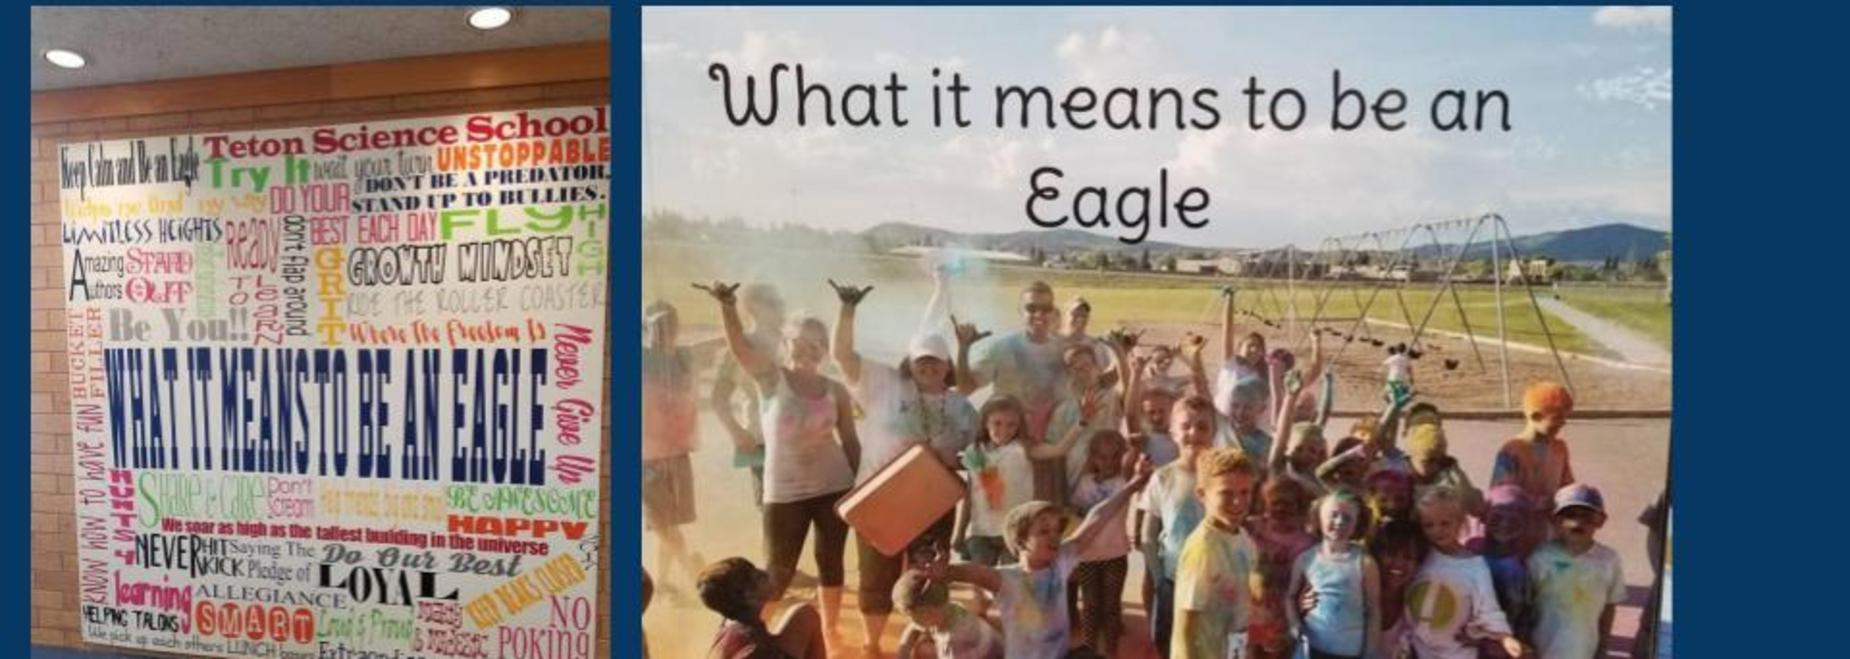 What it means to be an Eagle Project